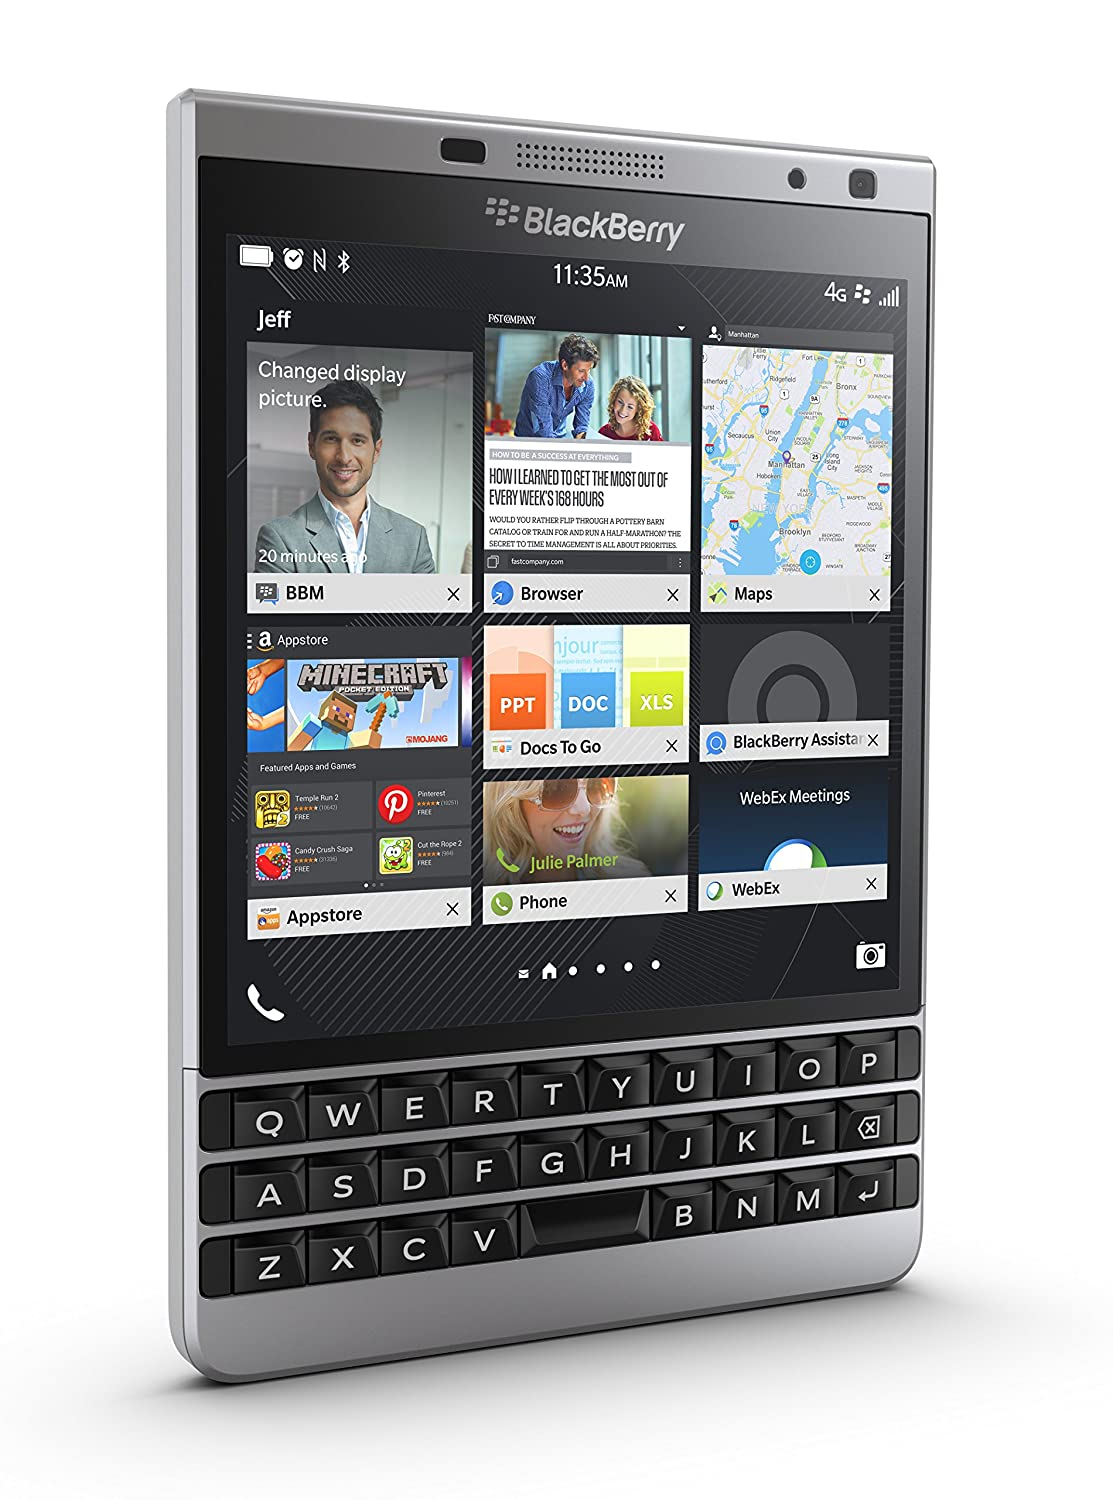 fce7194495e389 Amazon.com  BlackBerry Passport Unlocked Phone - Retail Packaging - Silver   Cell Phones   Accessories